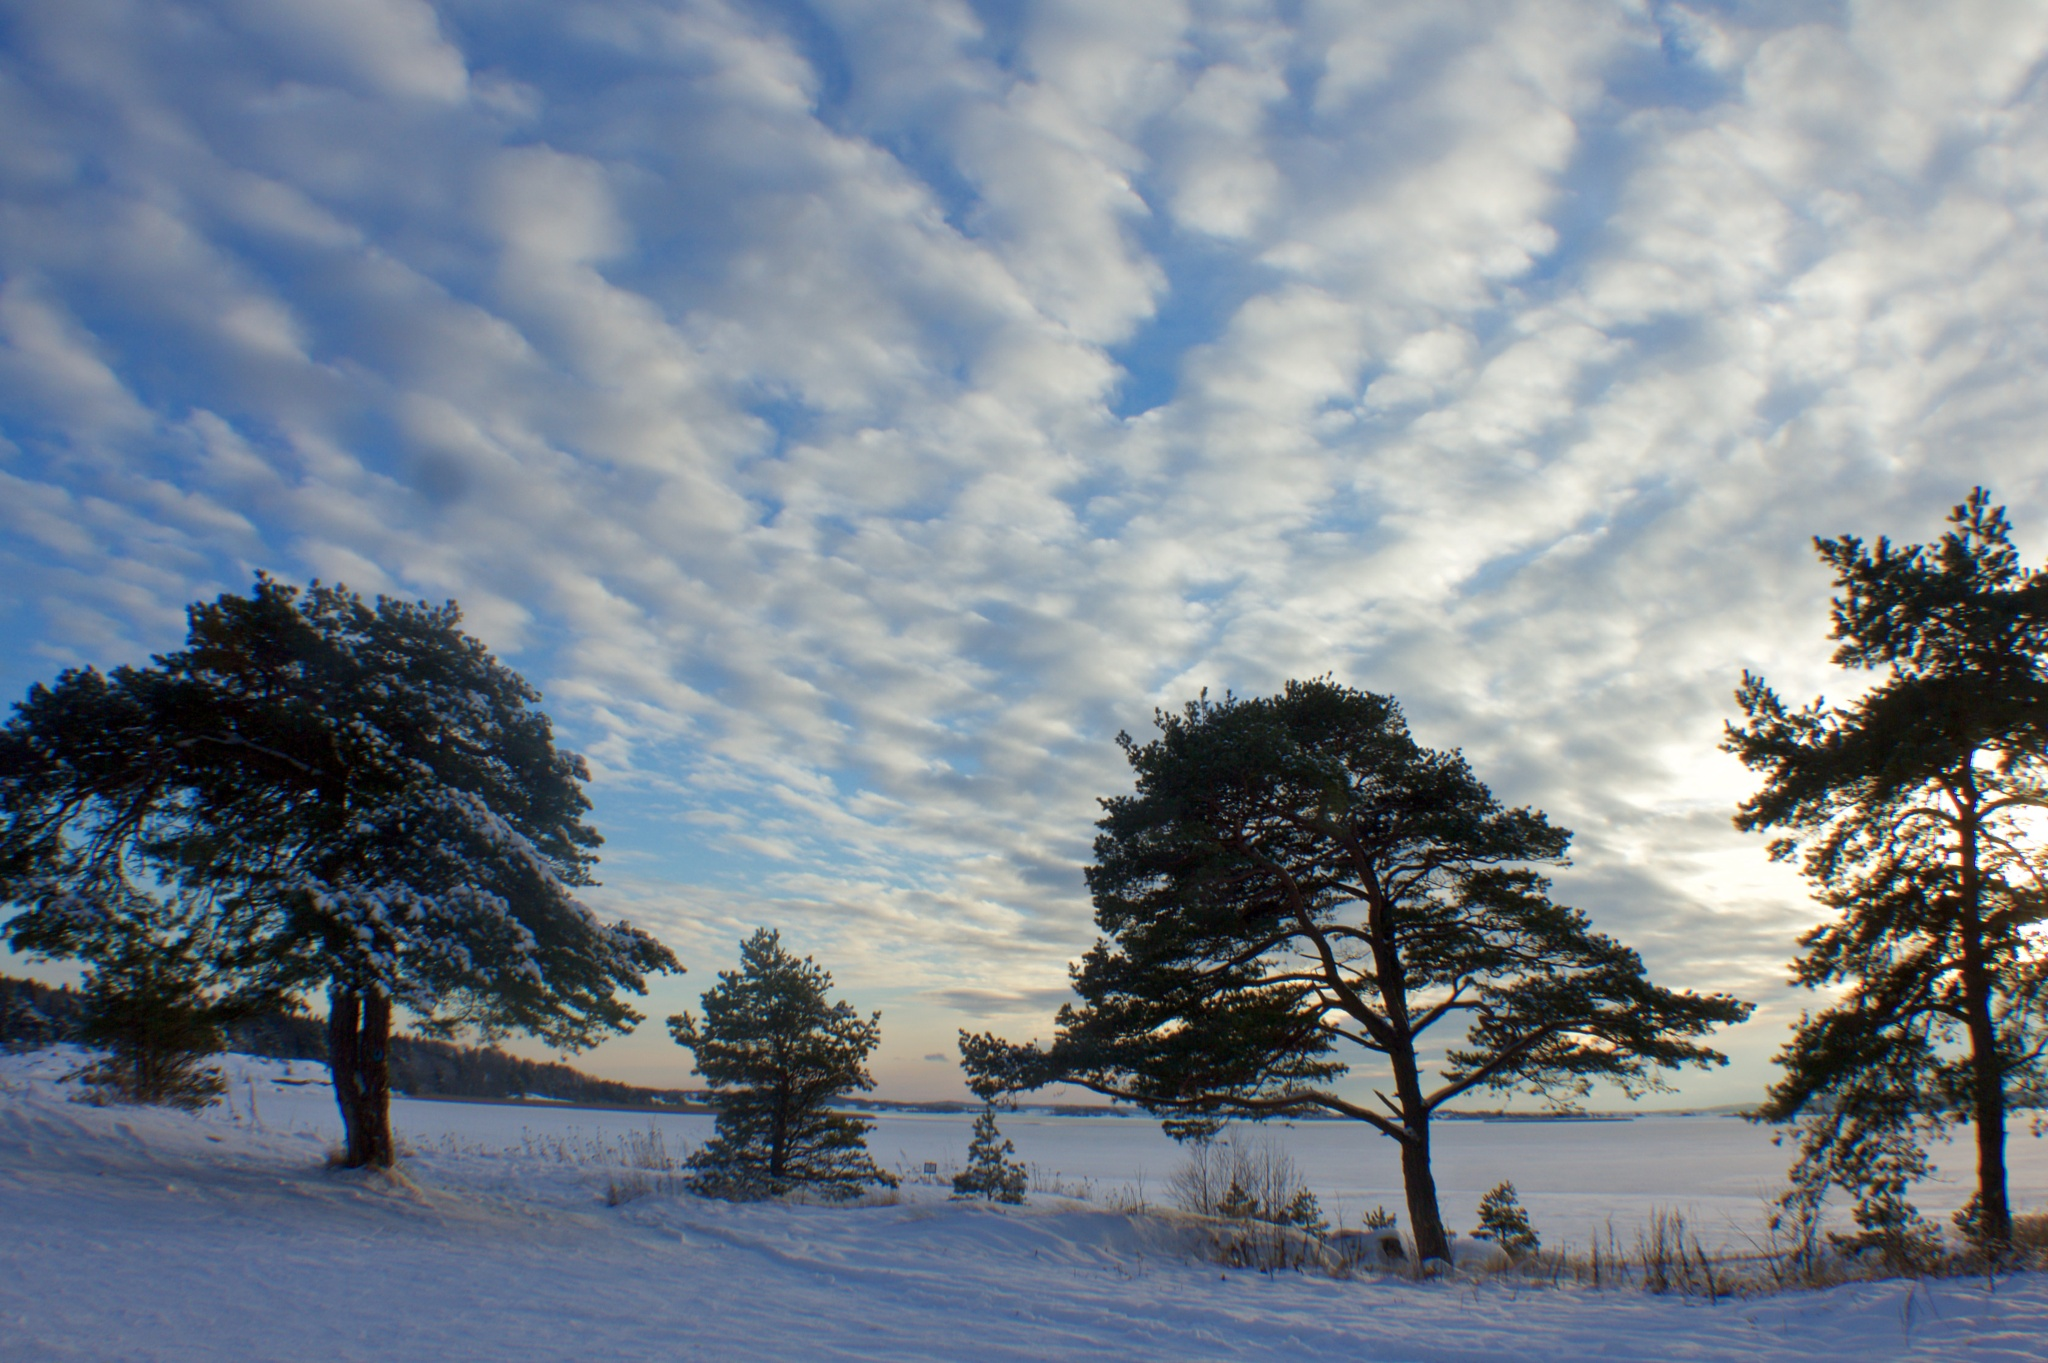 freezing cold and beautiful by Cecilie Hansteensen